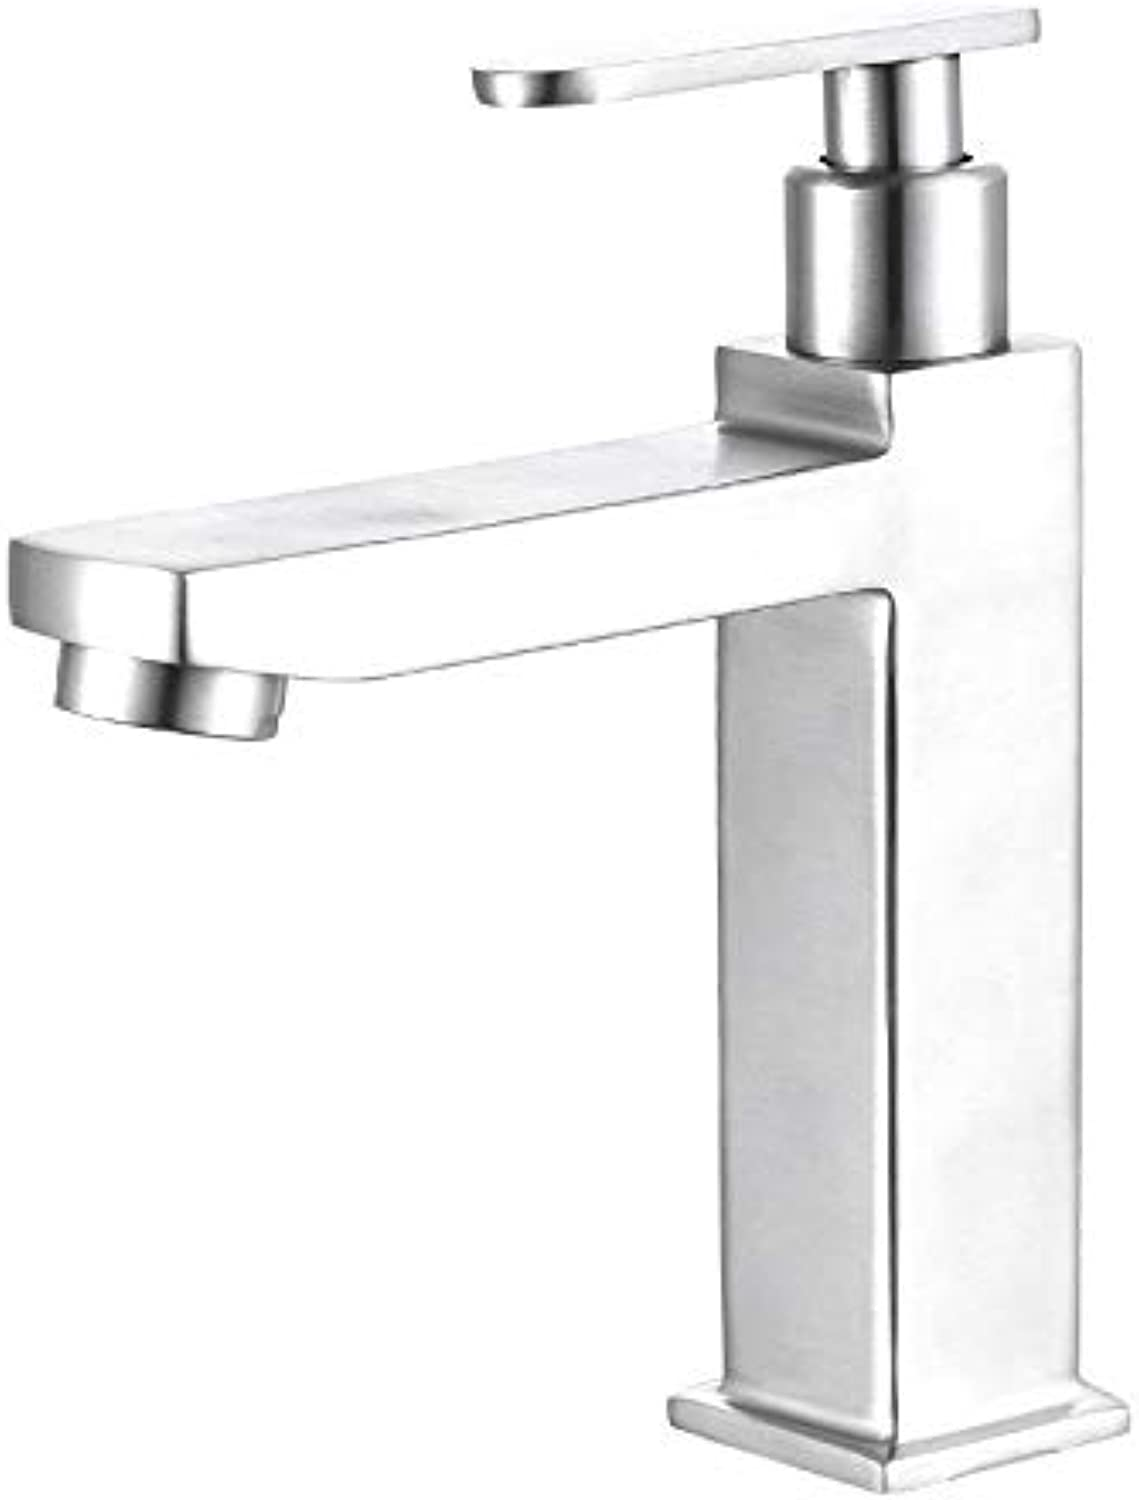 redOOY Taps Faucet Above Counter Basin 304 Single Cold Basin Faucet Bathroom Bathroom Ceramic Basin Faucet